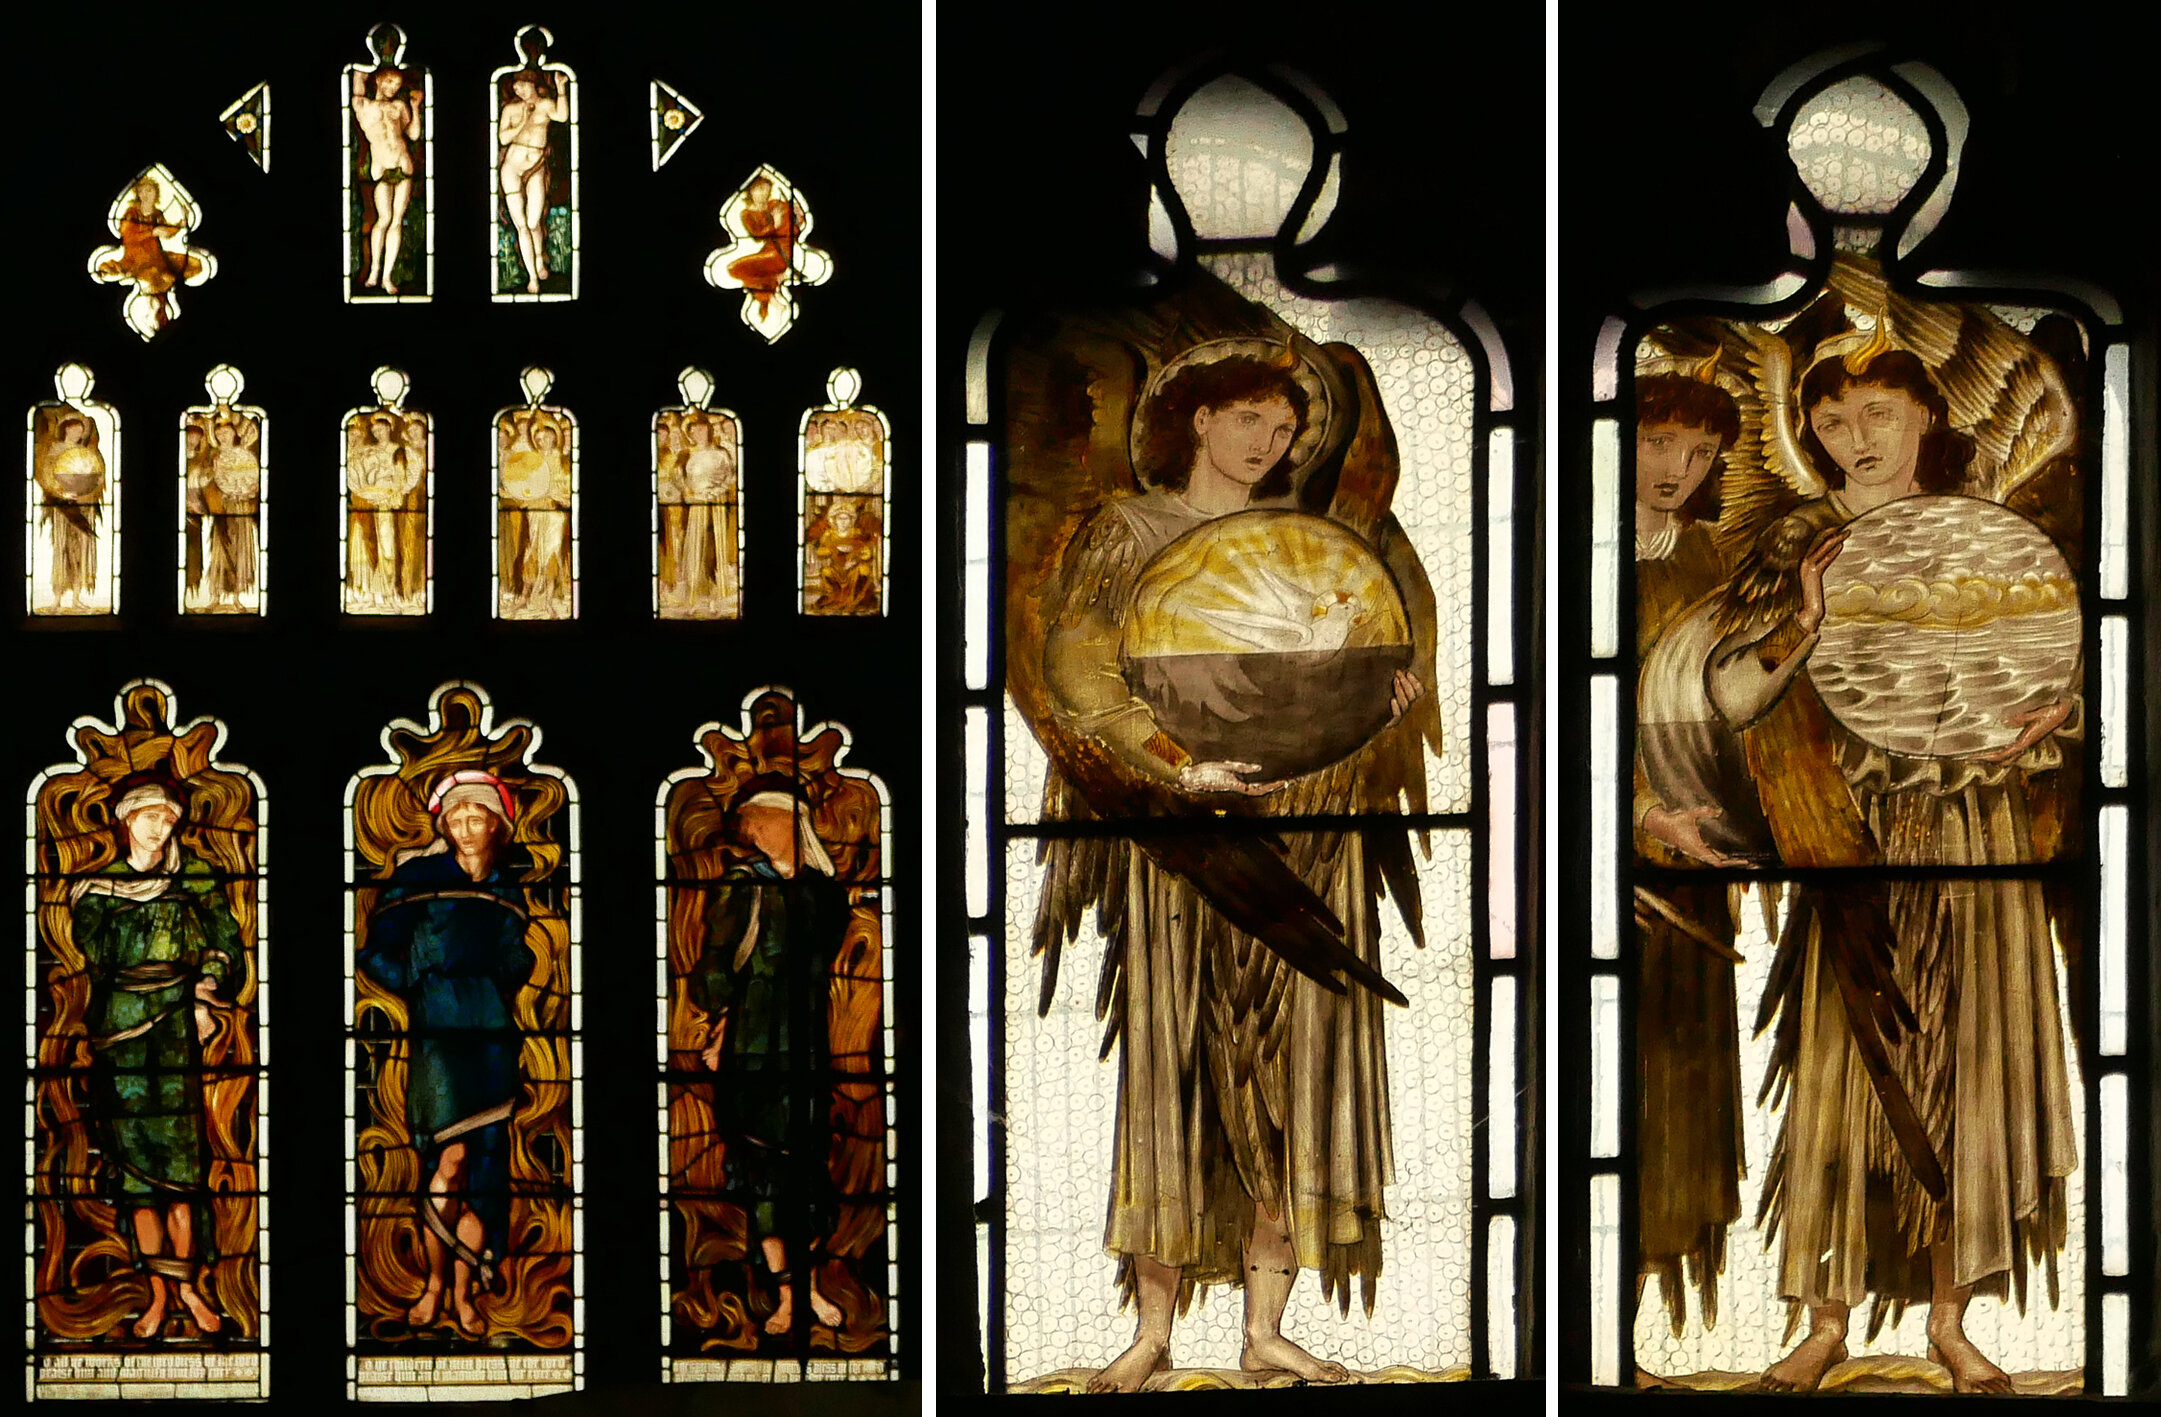 West window, All Saints, Middleton Cheney, Edward Burne-Jones 1870.